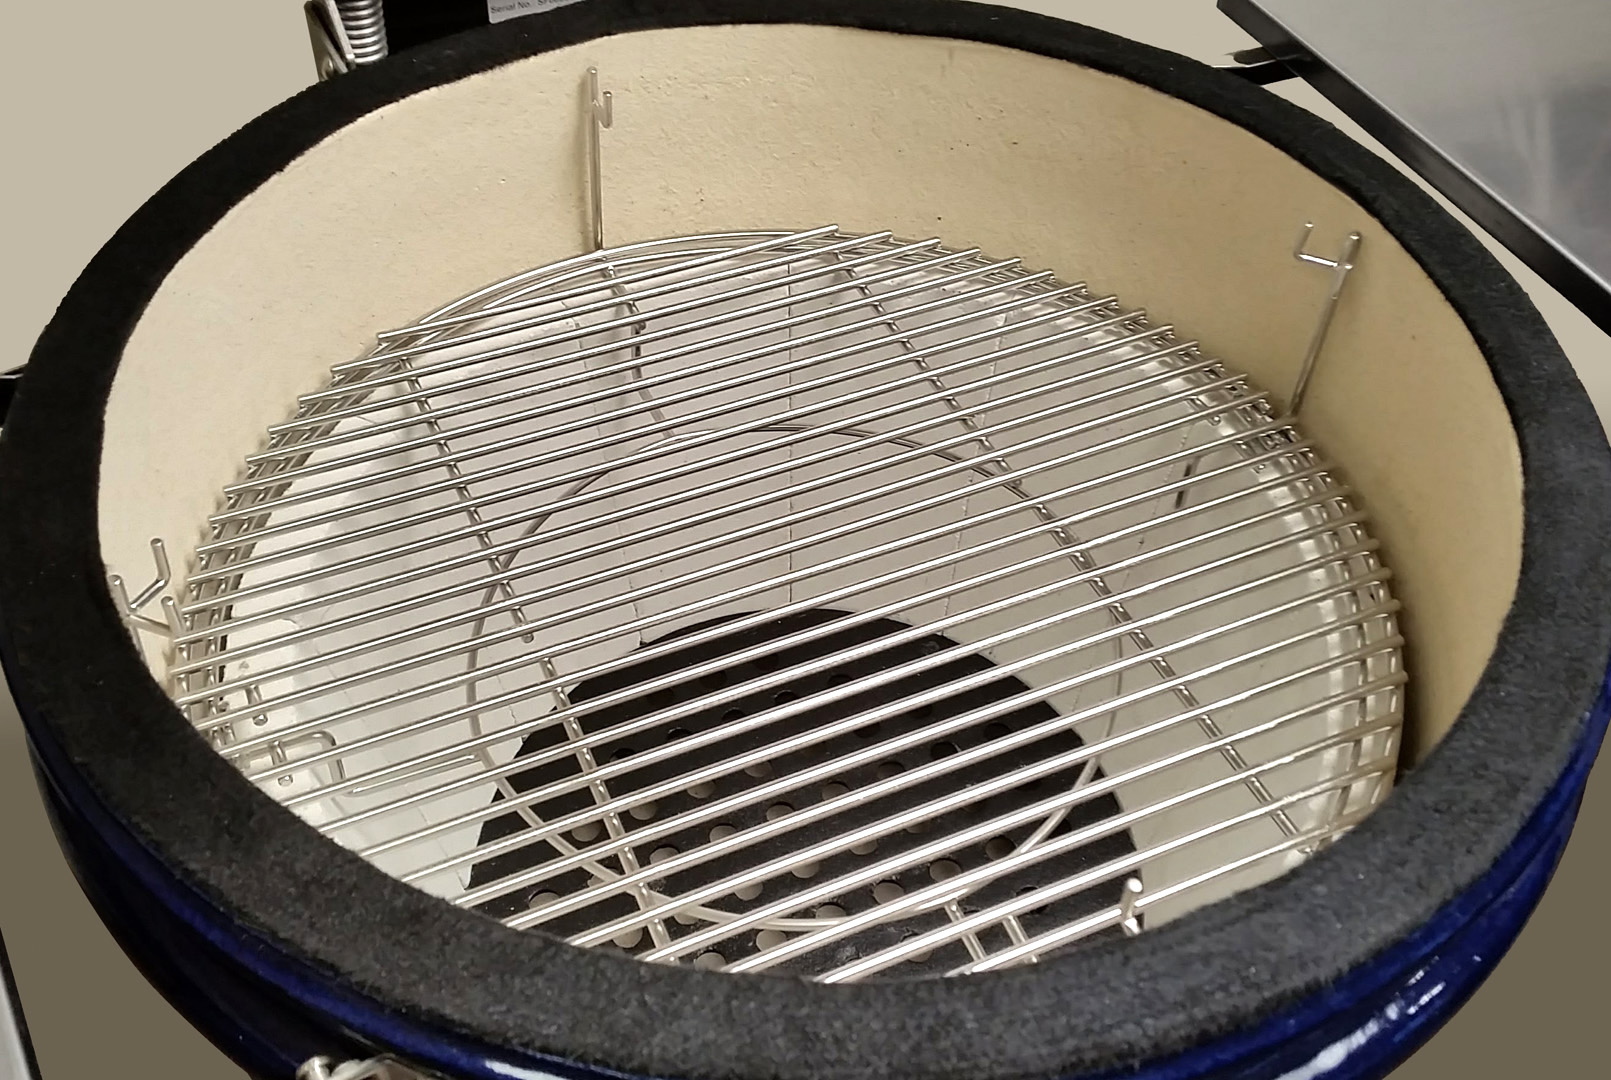 Multi-Grid shown with both grids at the bottom level of a Multi-Rack; Crucible Firebox shown below them